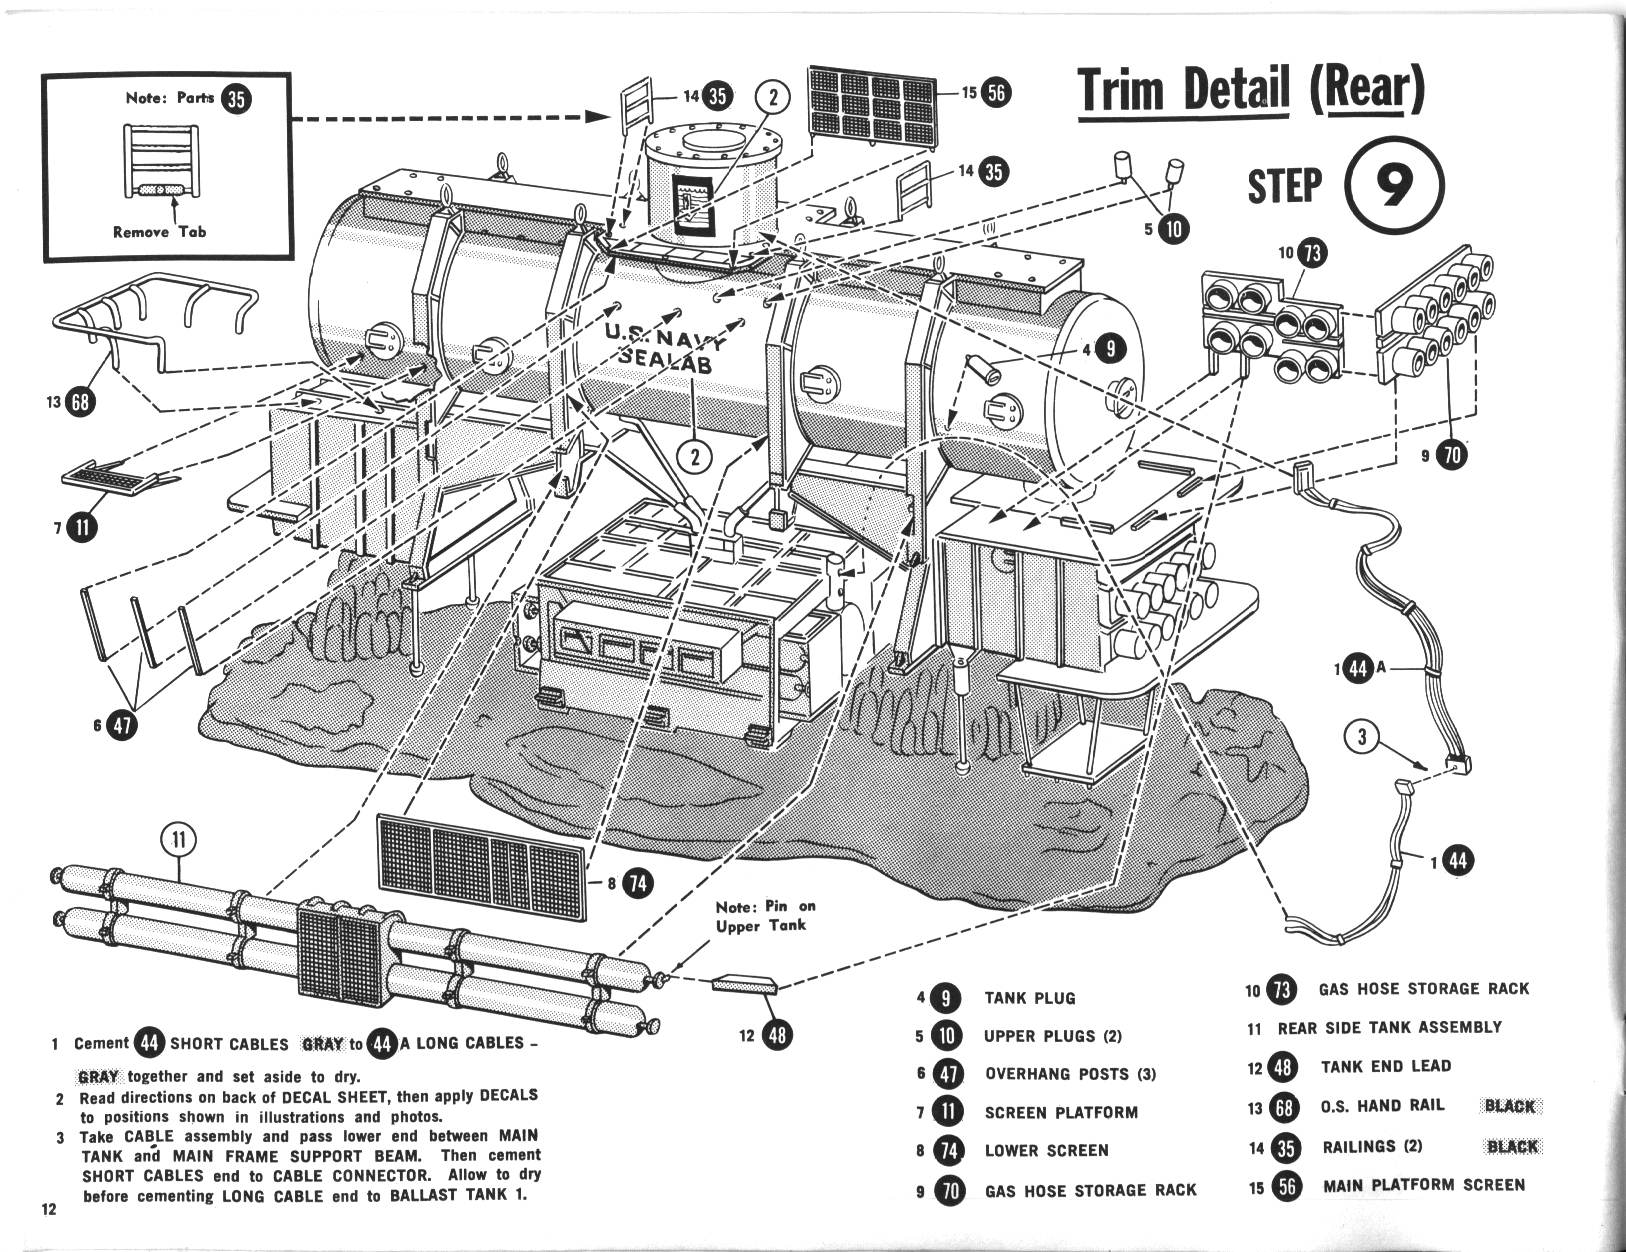 Index Of Schwehr Lajolla2004 Lajollaphotos Sealab 94 S10 Engine Diagram Iii Parts